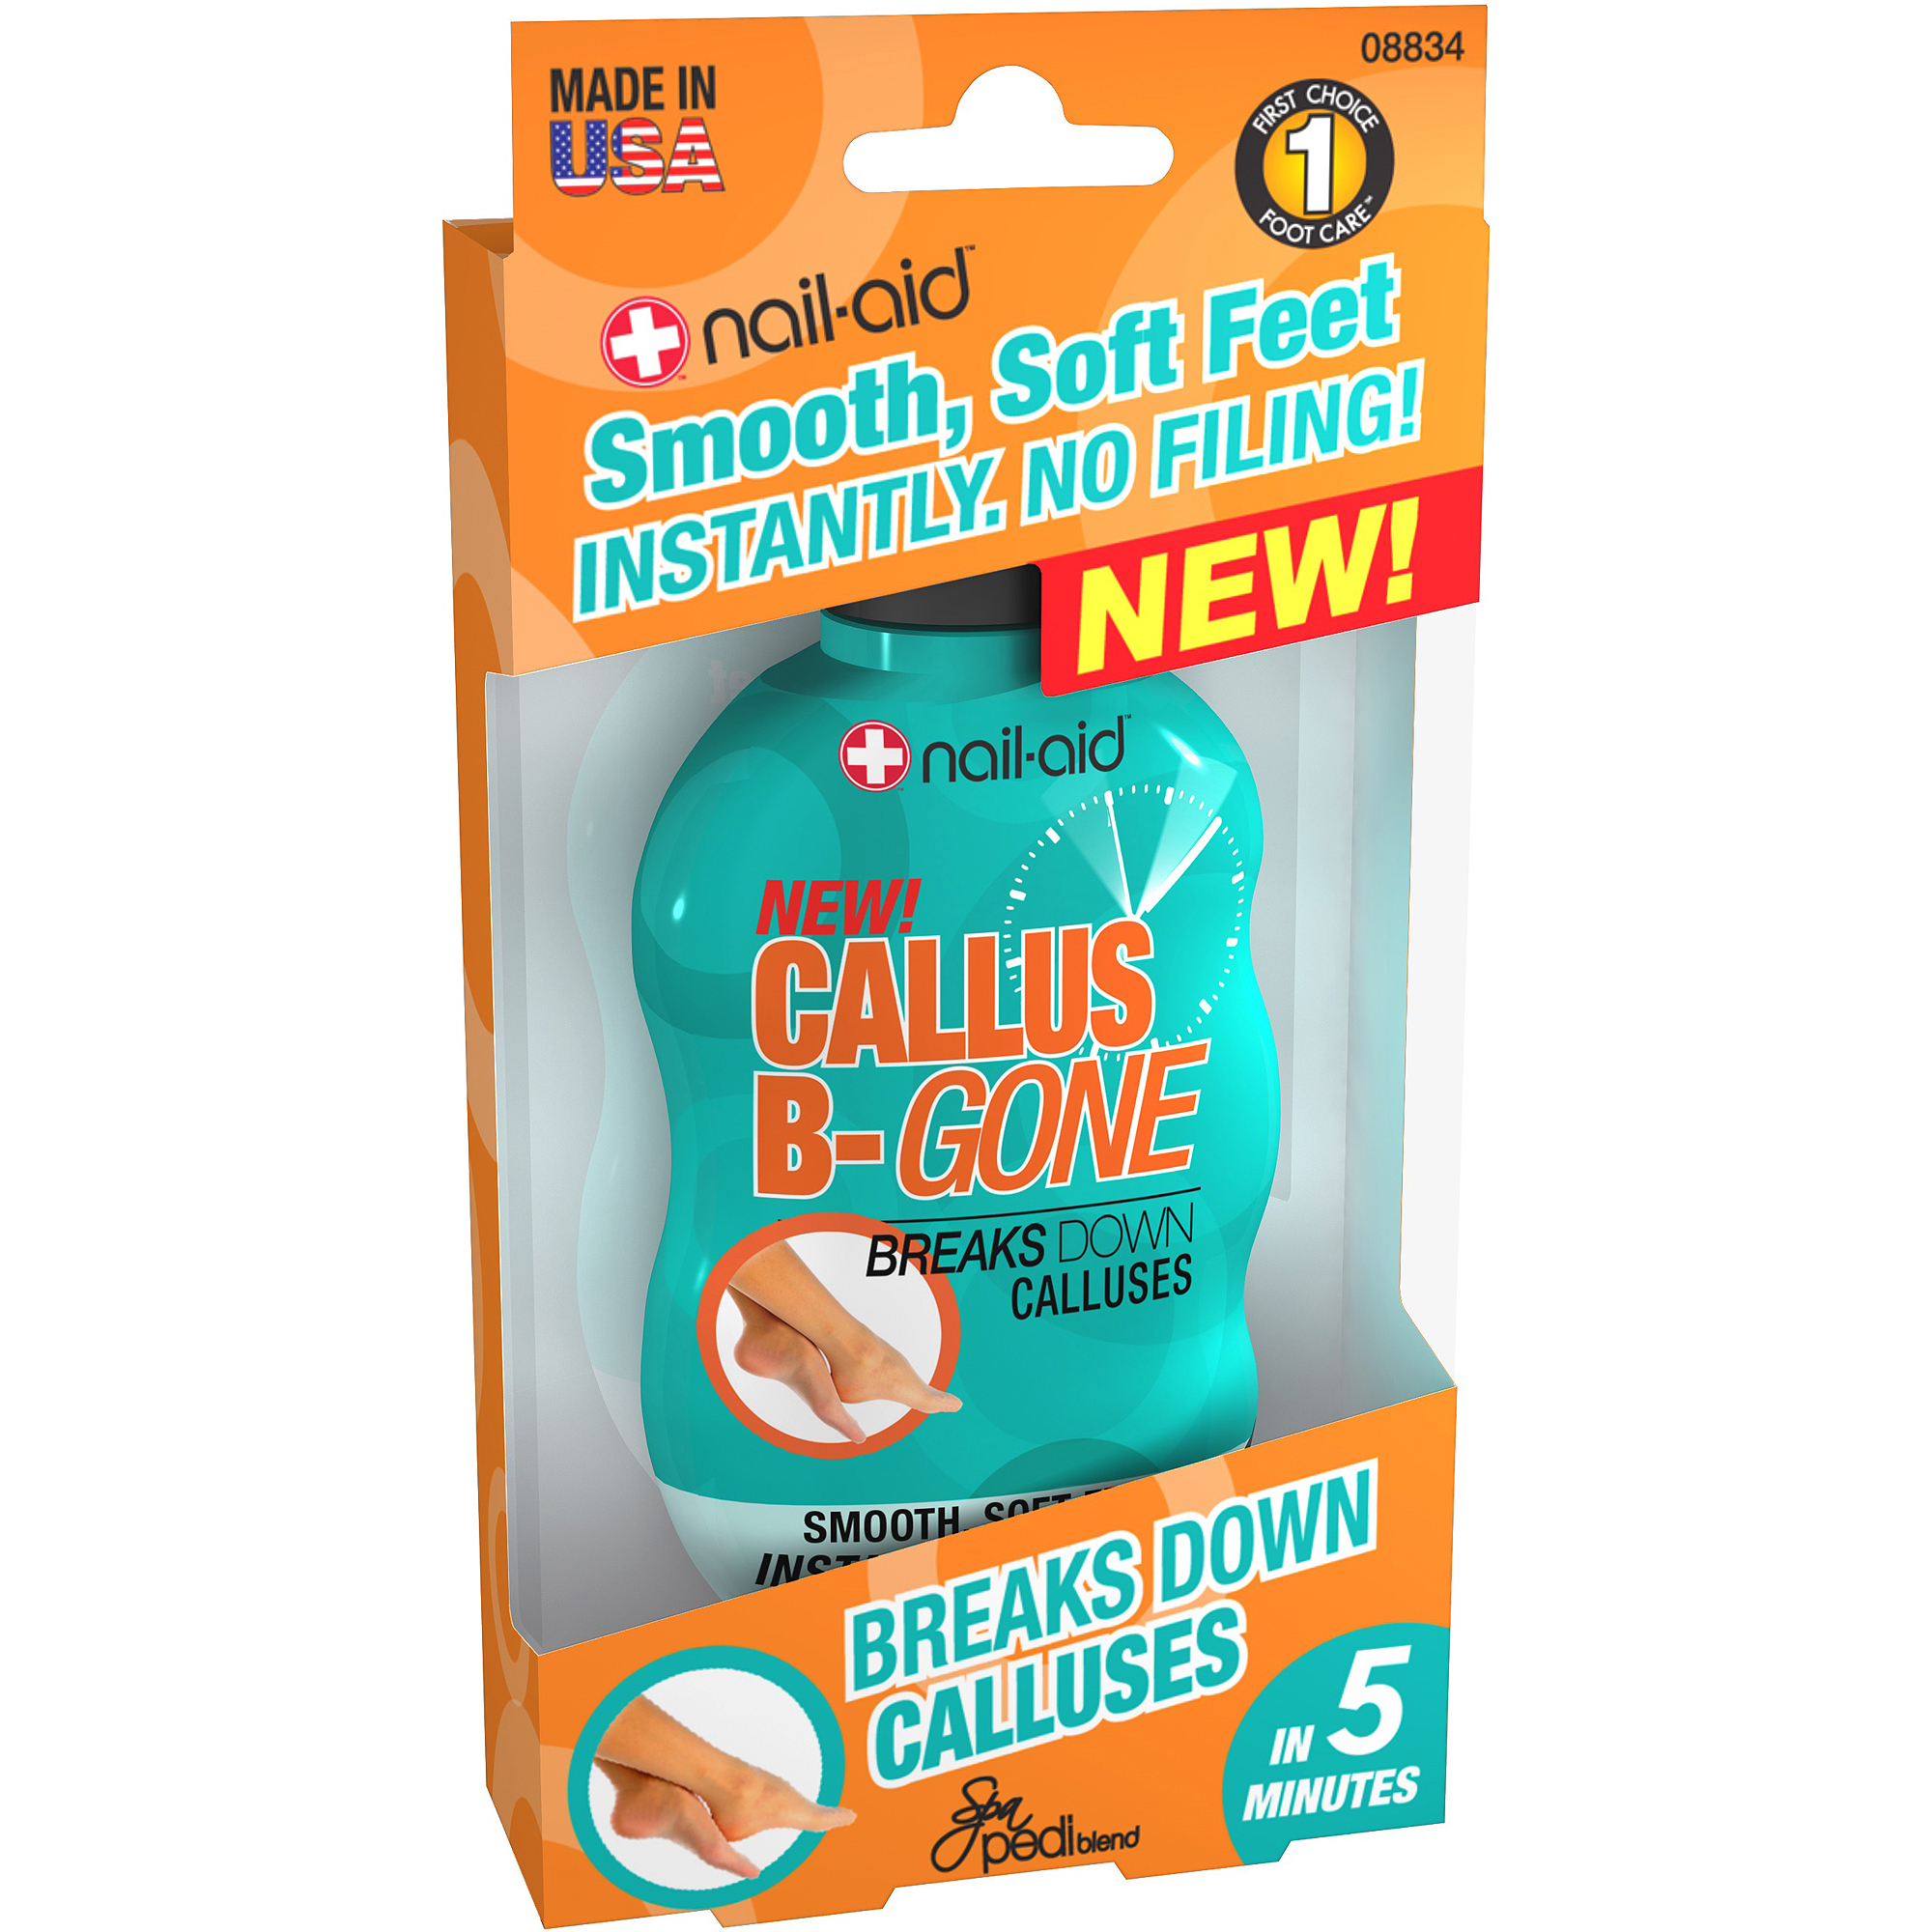 Nail-Aid Callus B-Gone Gel, 2.25 fl oz